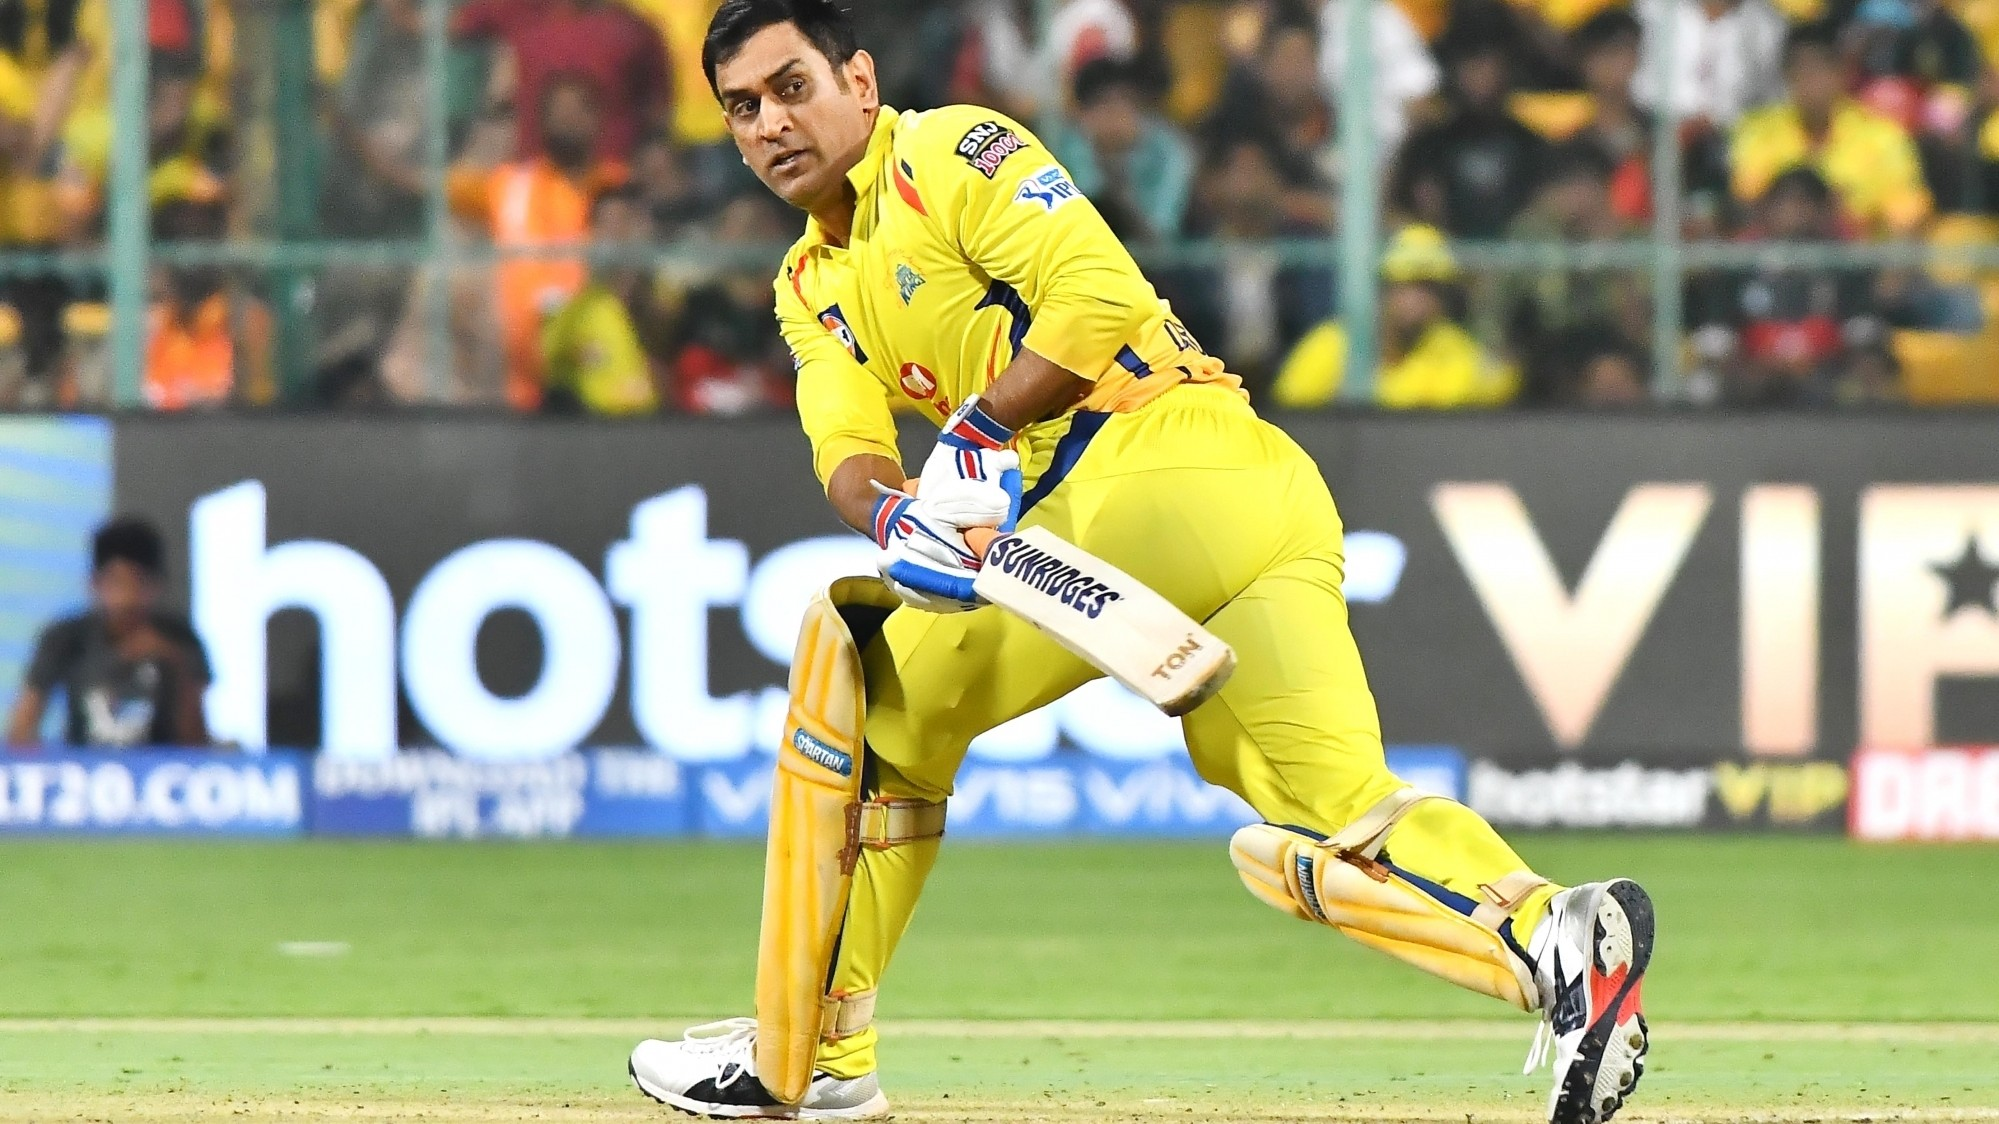 IPL 2019: Need to be careful with my dodgy back ahead of the World Cup, says MS Dhoni